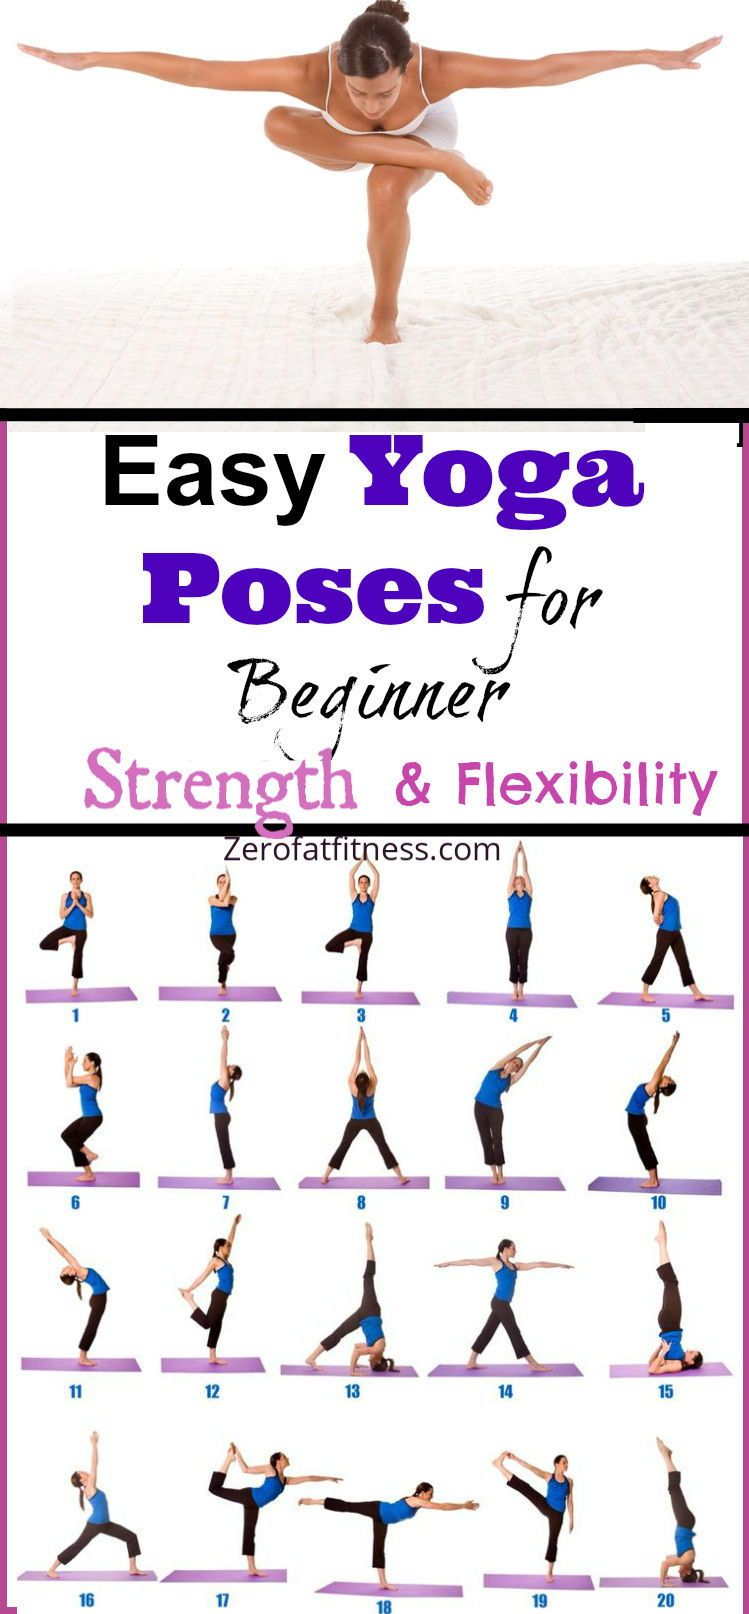 10 Minute Beginners Yoga Poses For Flexibility And Strength Morning Yoga Poses Easy Yoga Workouts Yoga Poses For Beginners